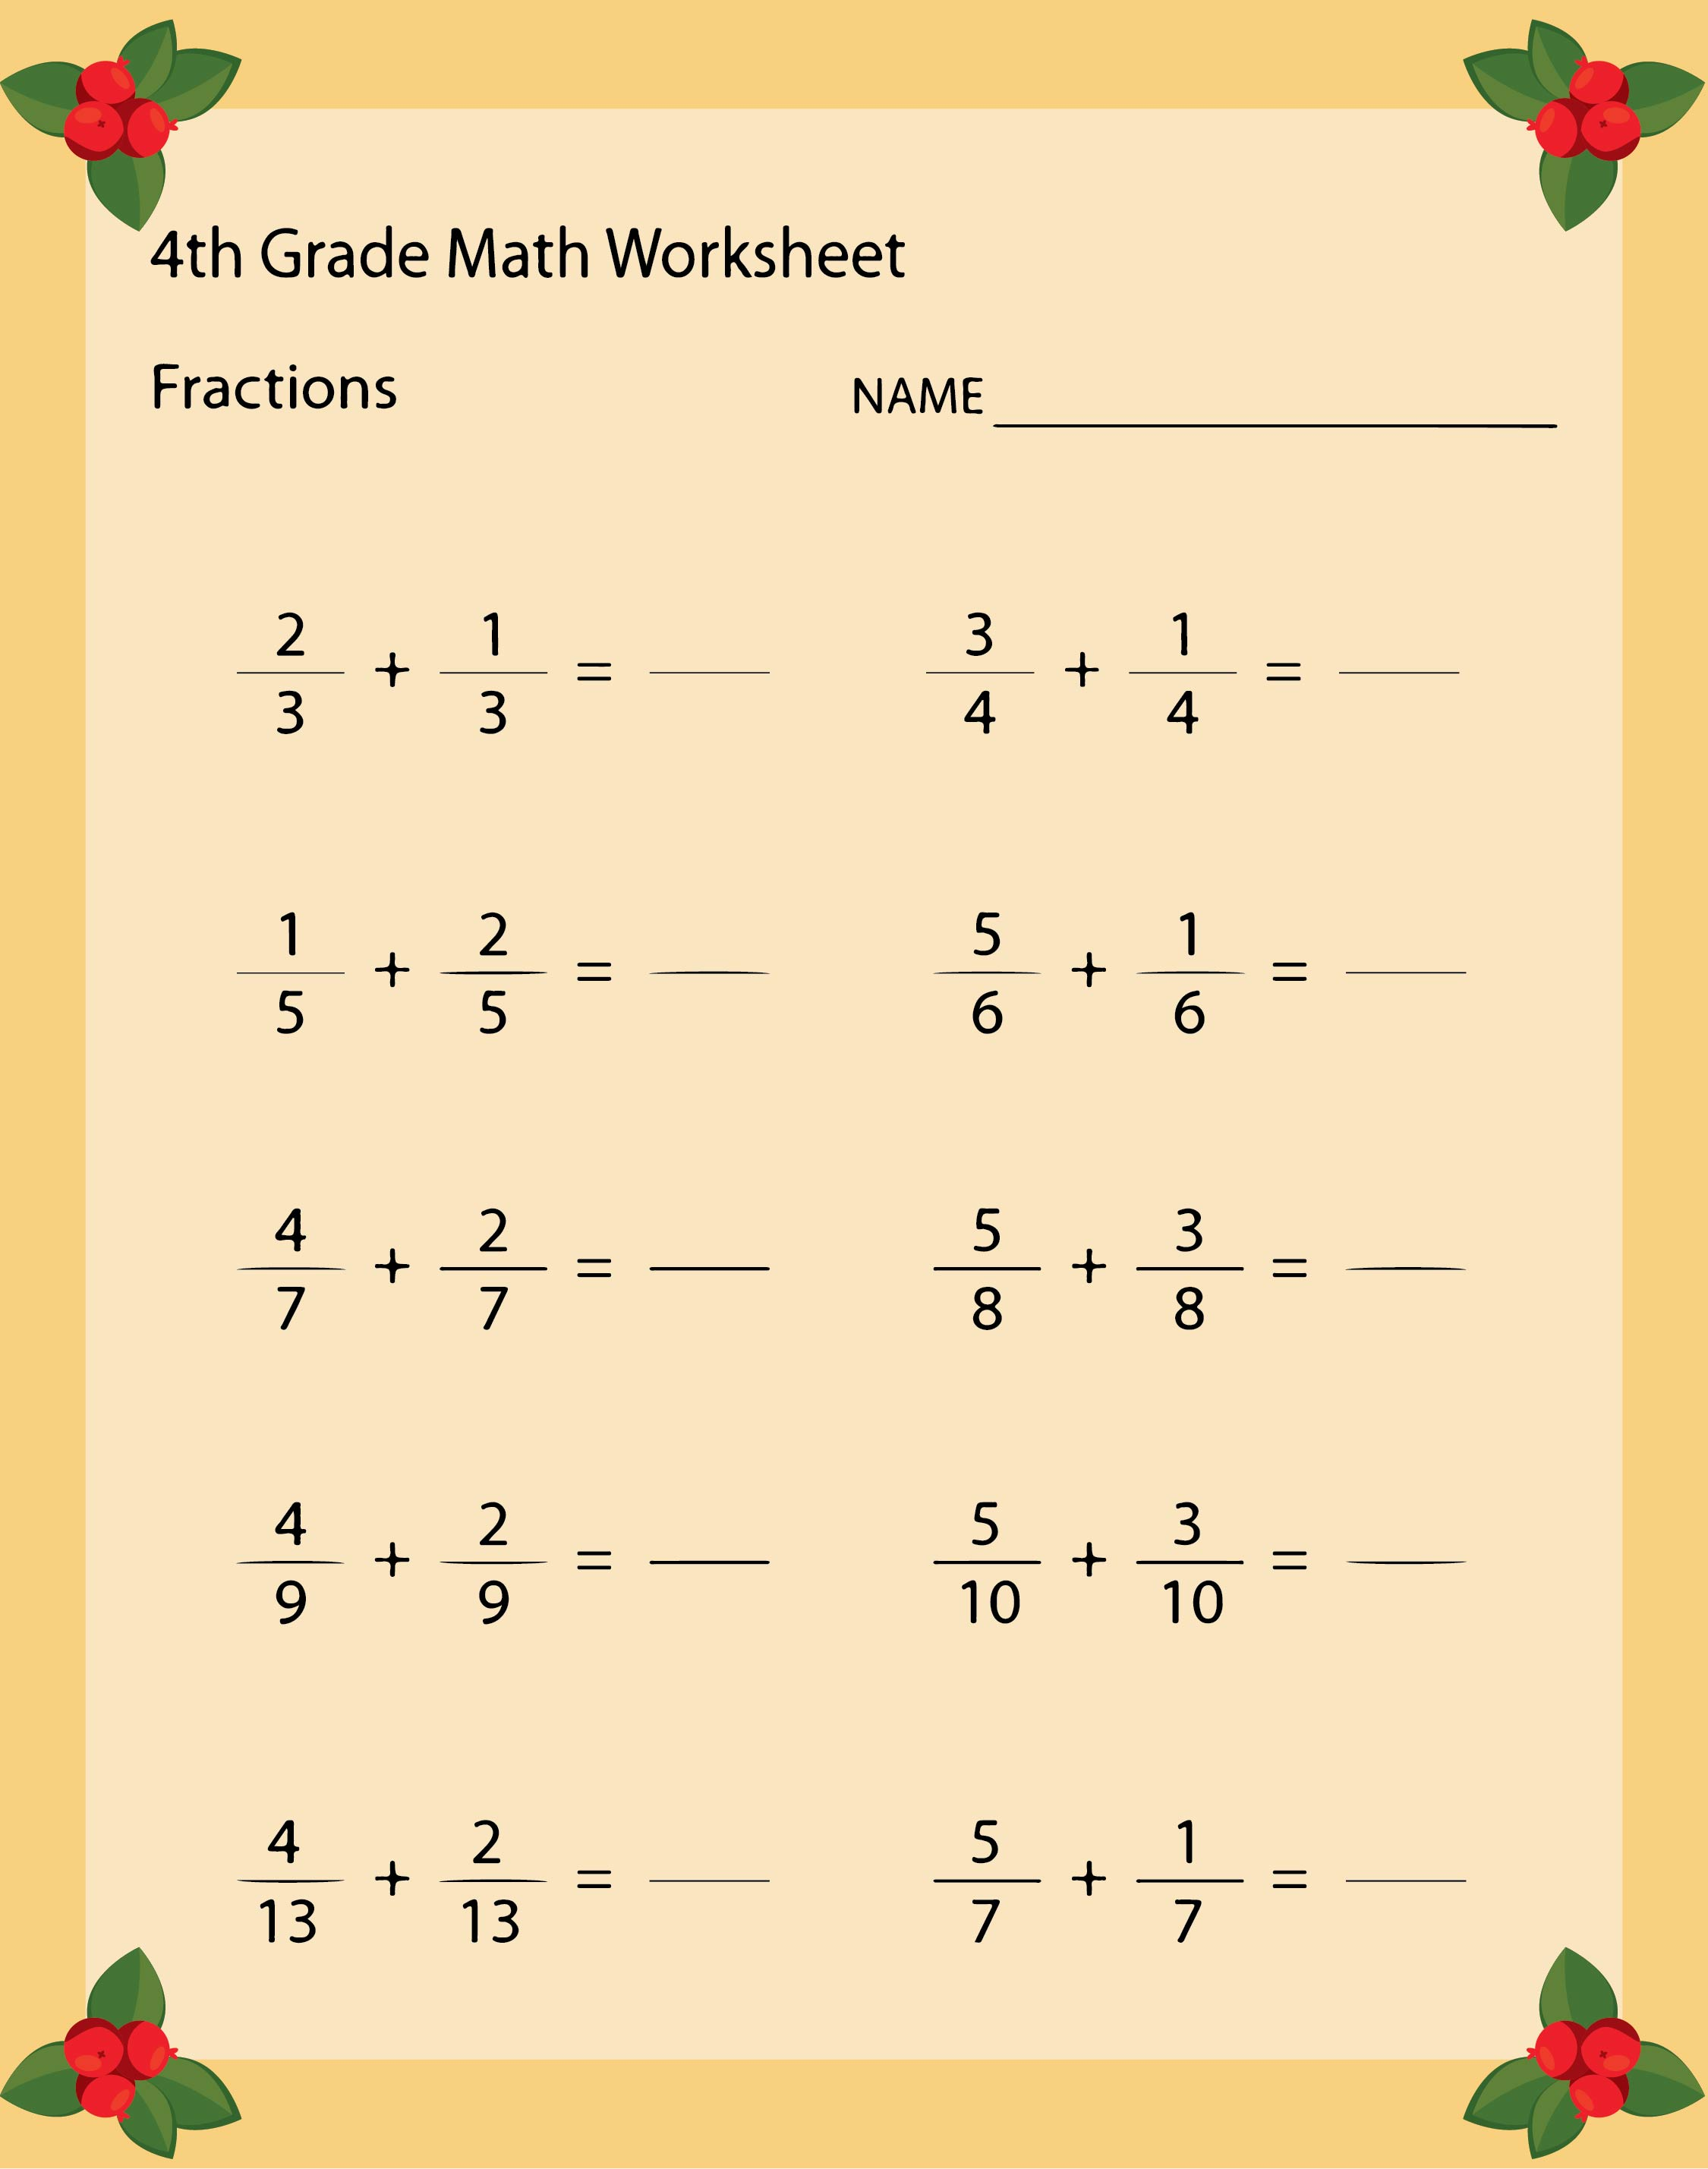 Free Math Worksheets 4Th Grade – Free Math Worksheets 4th Grade